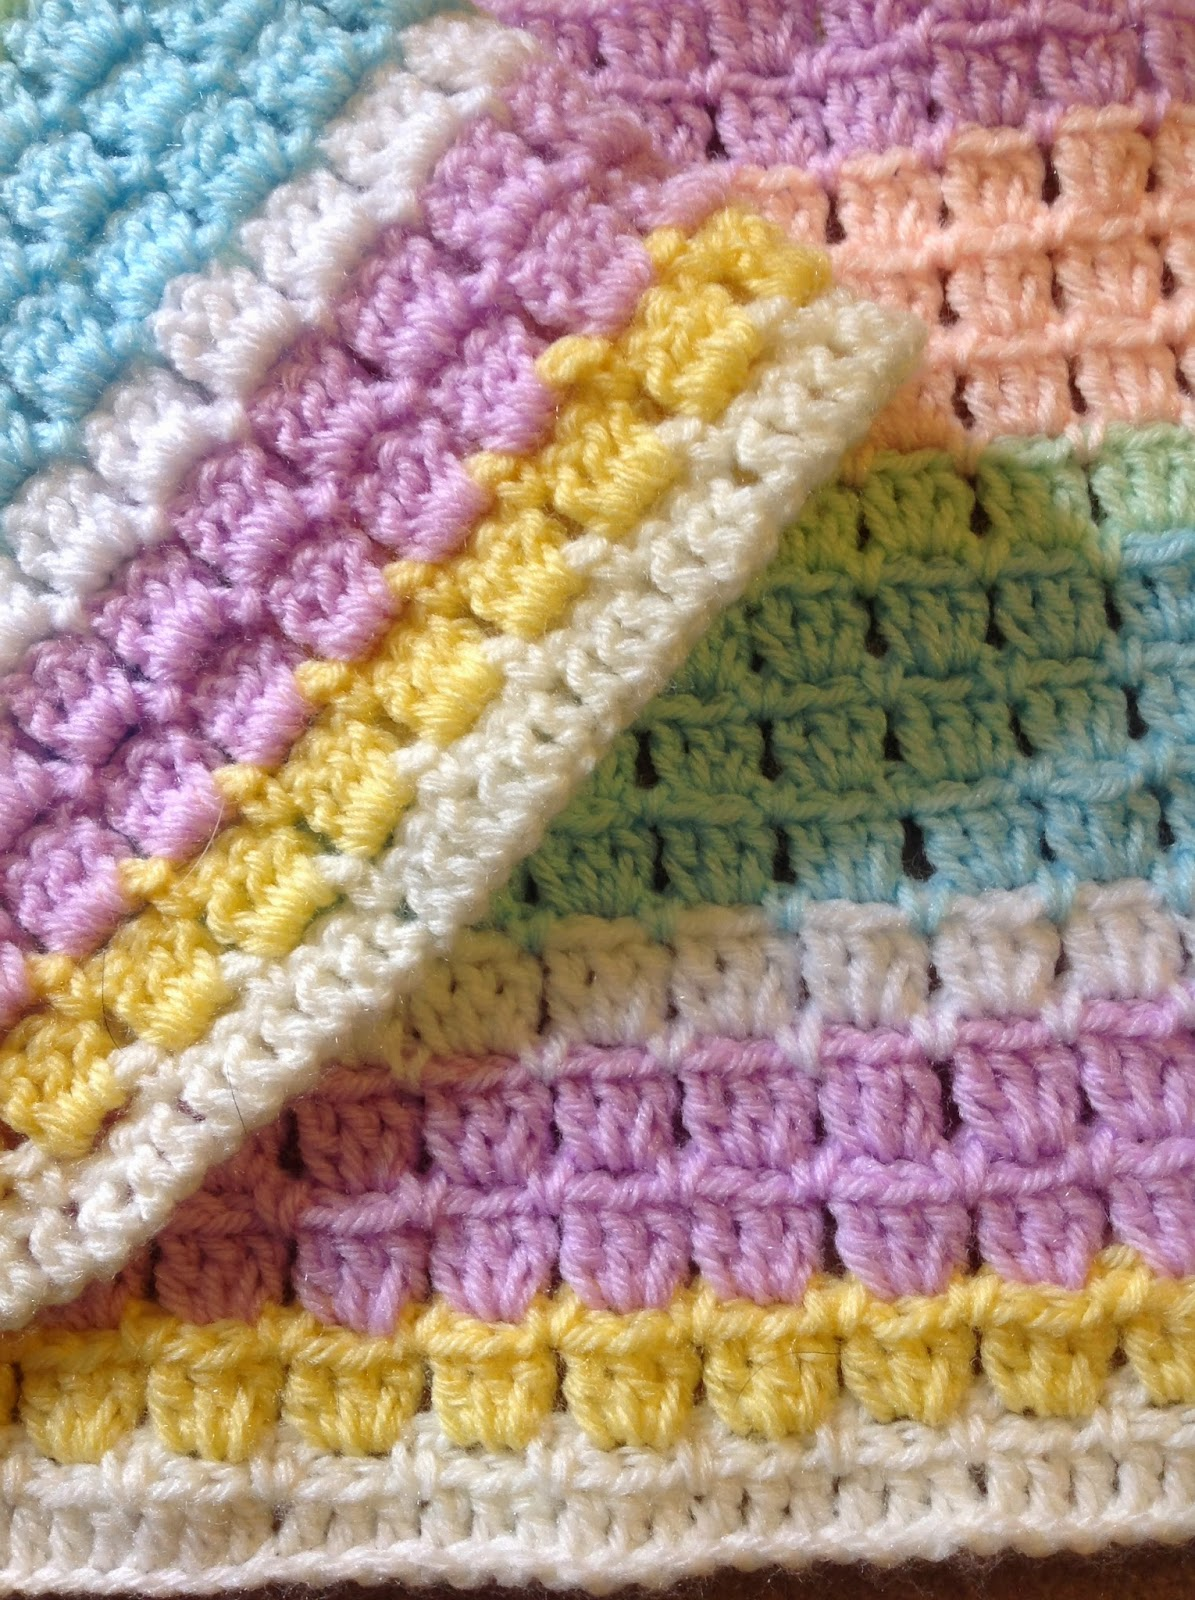 OYA\'s WORLD- Crochet-Knitting: Crochet: BLOCK STITCH Baby Blanket